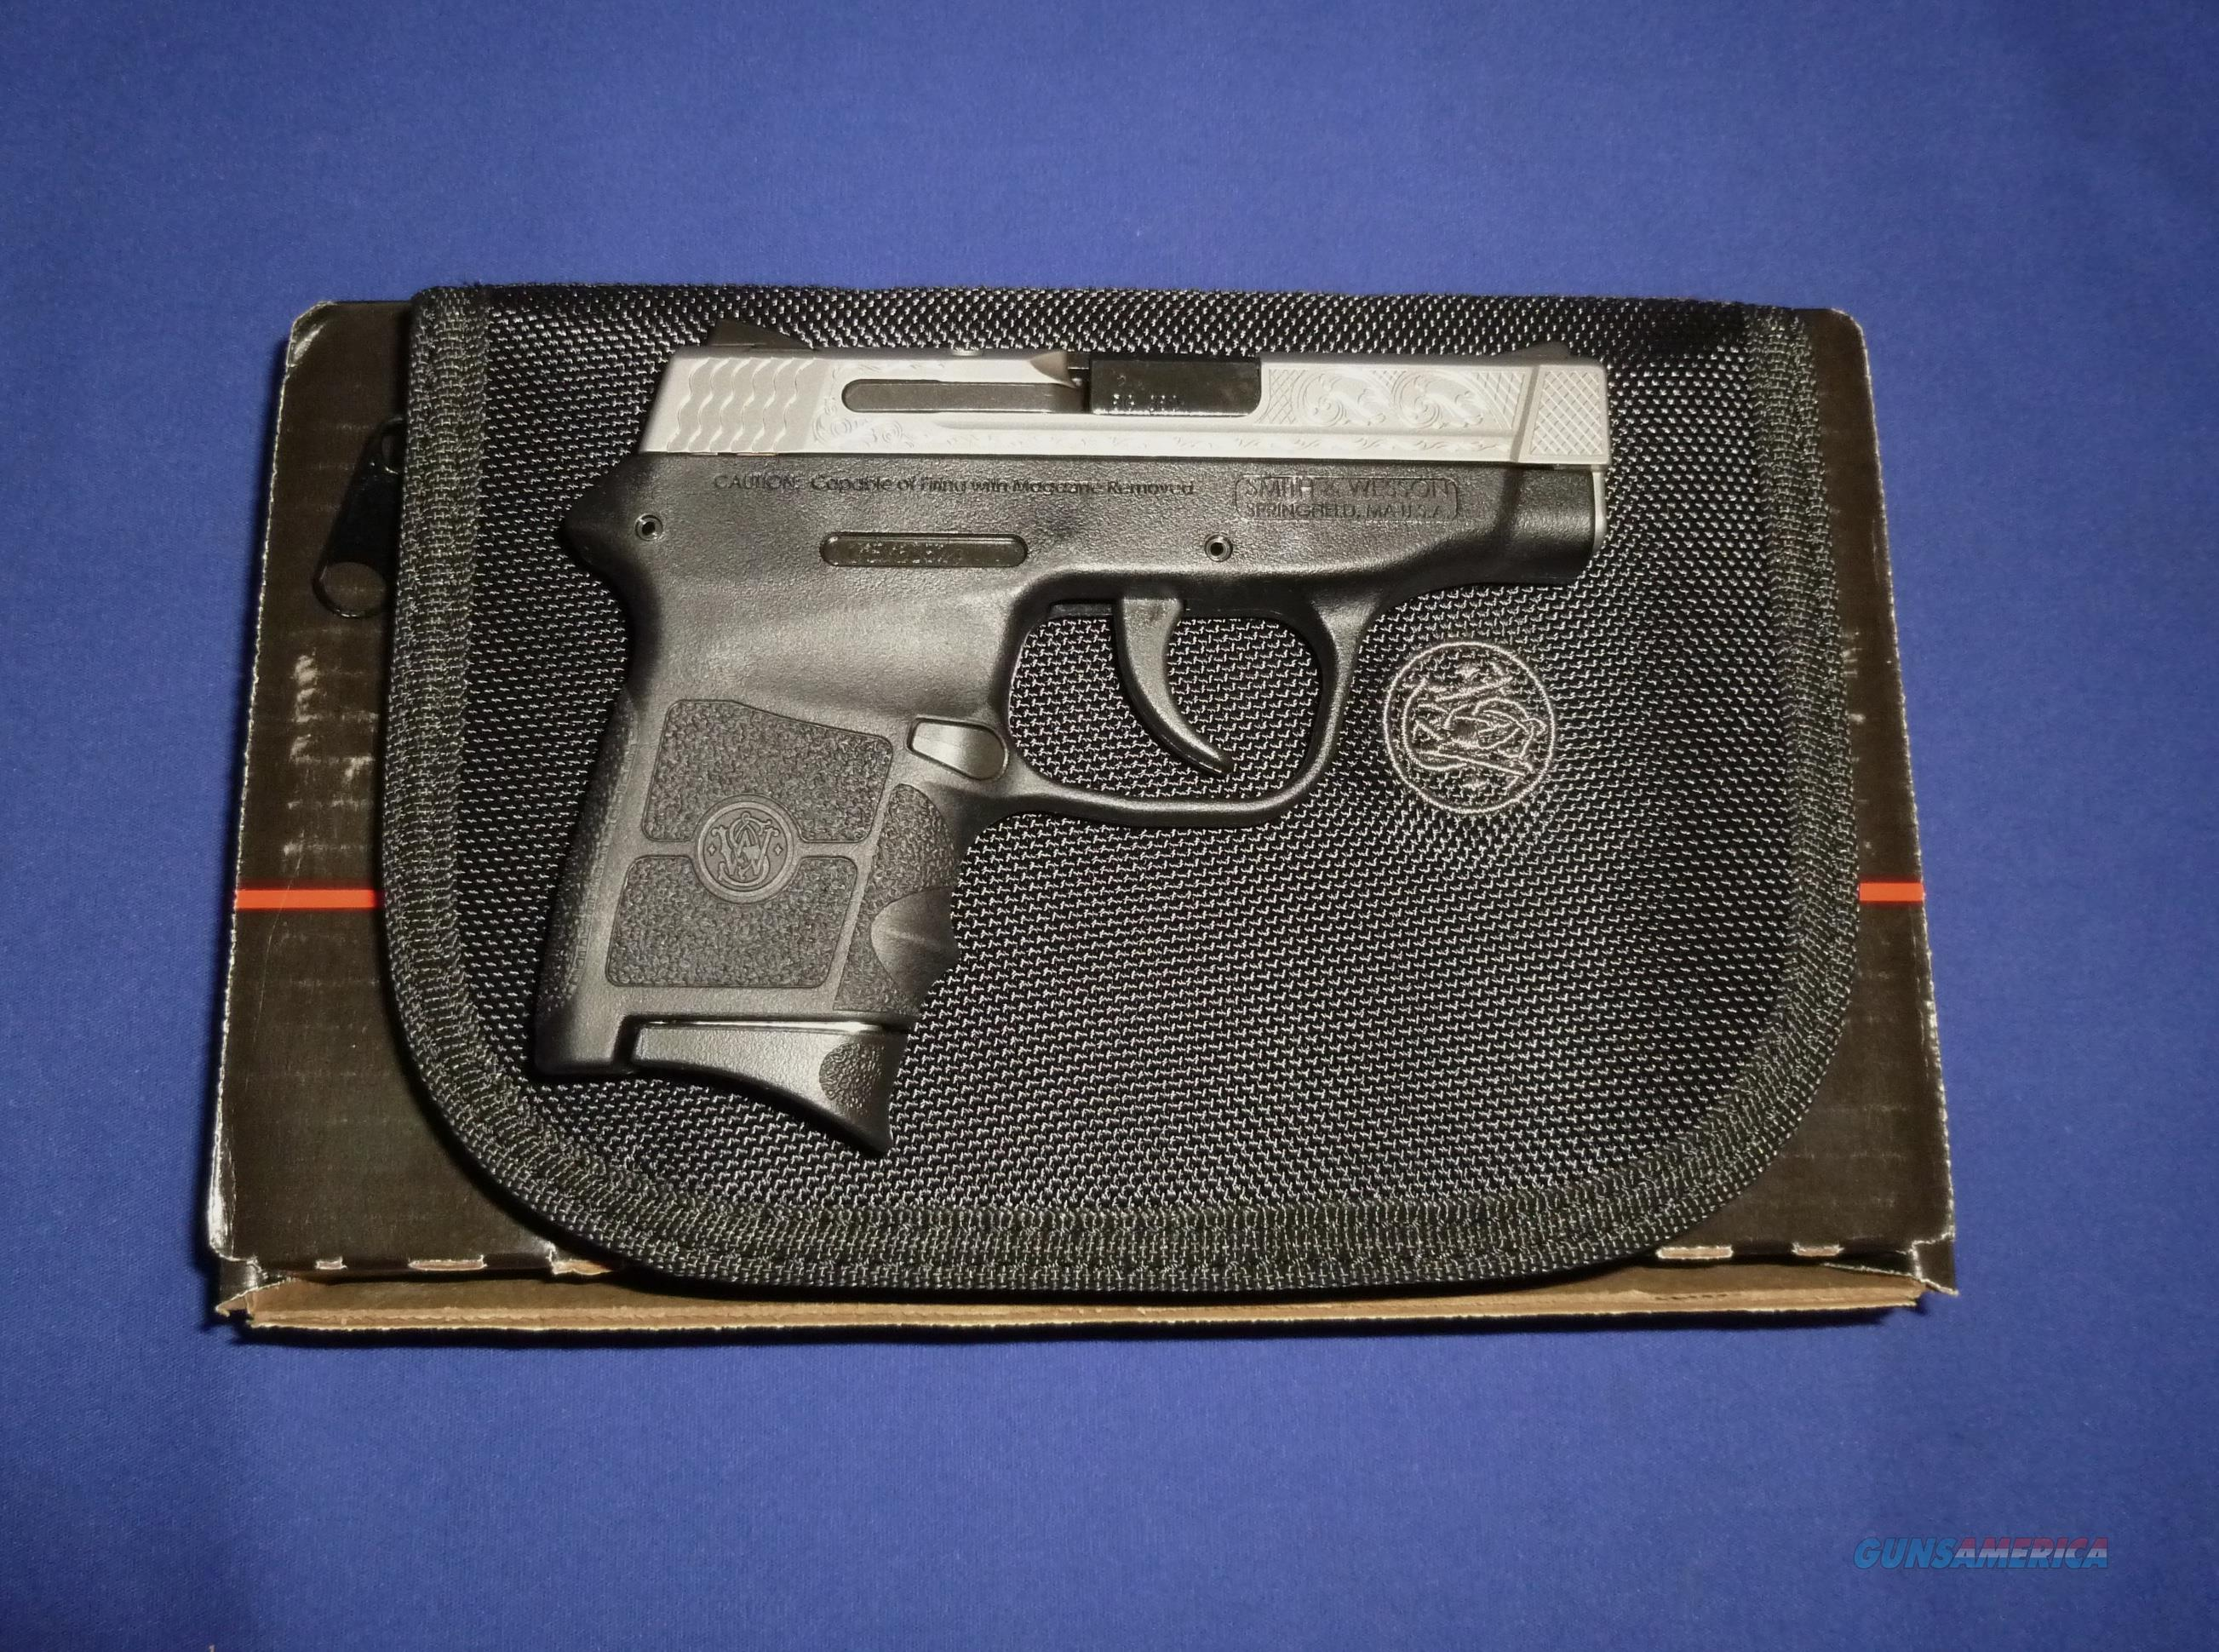 SMITH & WESSON M&P BODYGUARD 380ACP ENGRAVED MICRO-COMPACT PISTOL   Guns > Pistols > Smith & Wesson Pistols - Autos > Polymer Frame